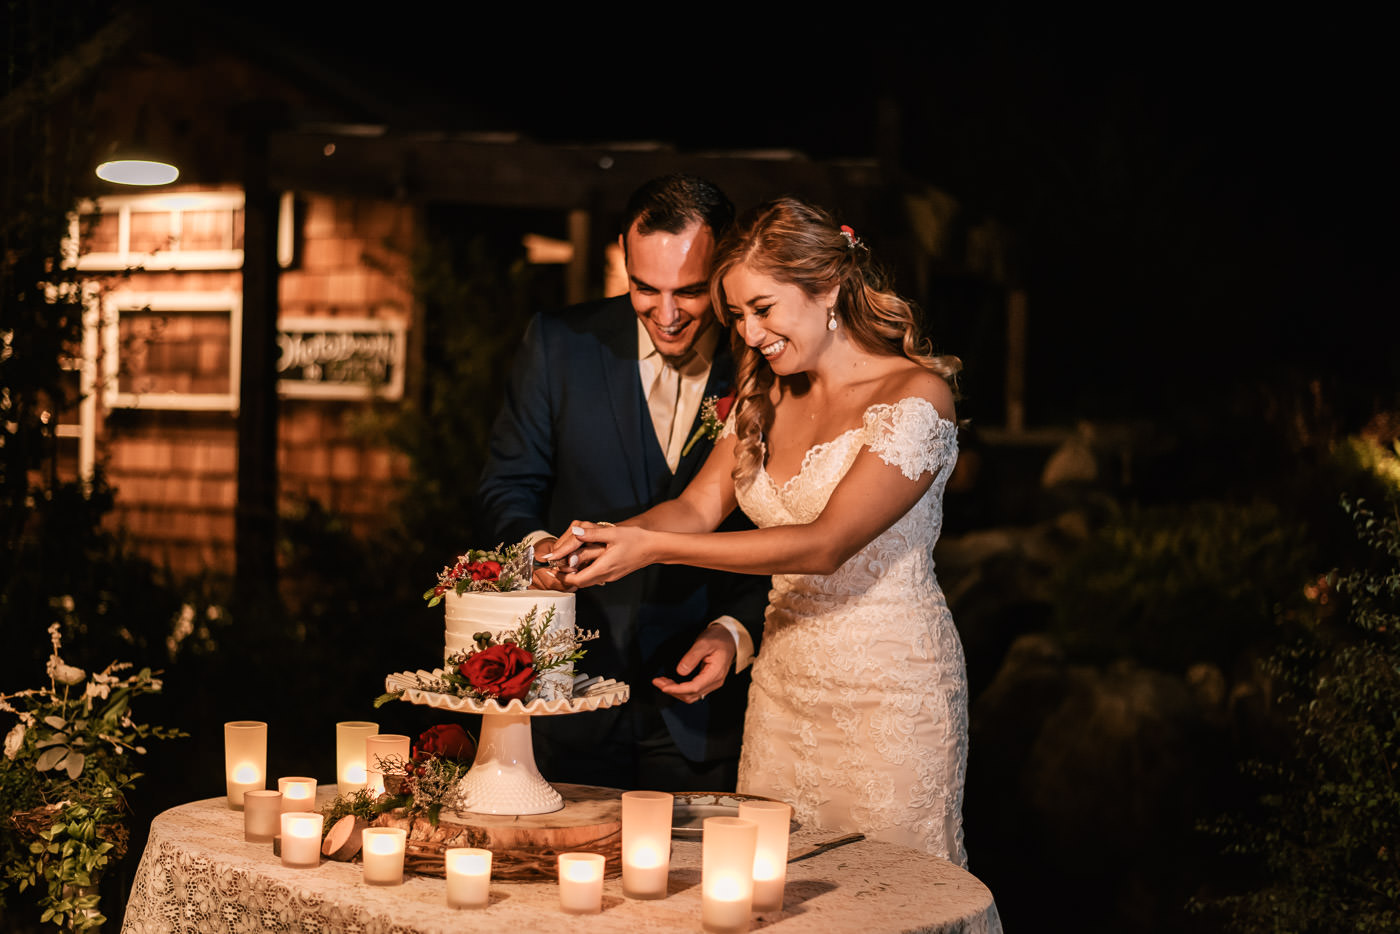 Bride and groom prepare to cut the cake at their reception at The Homestead.